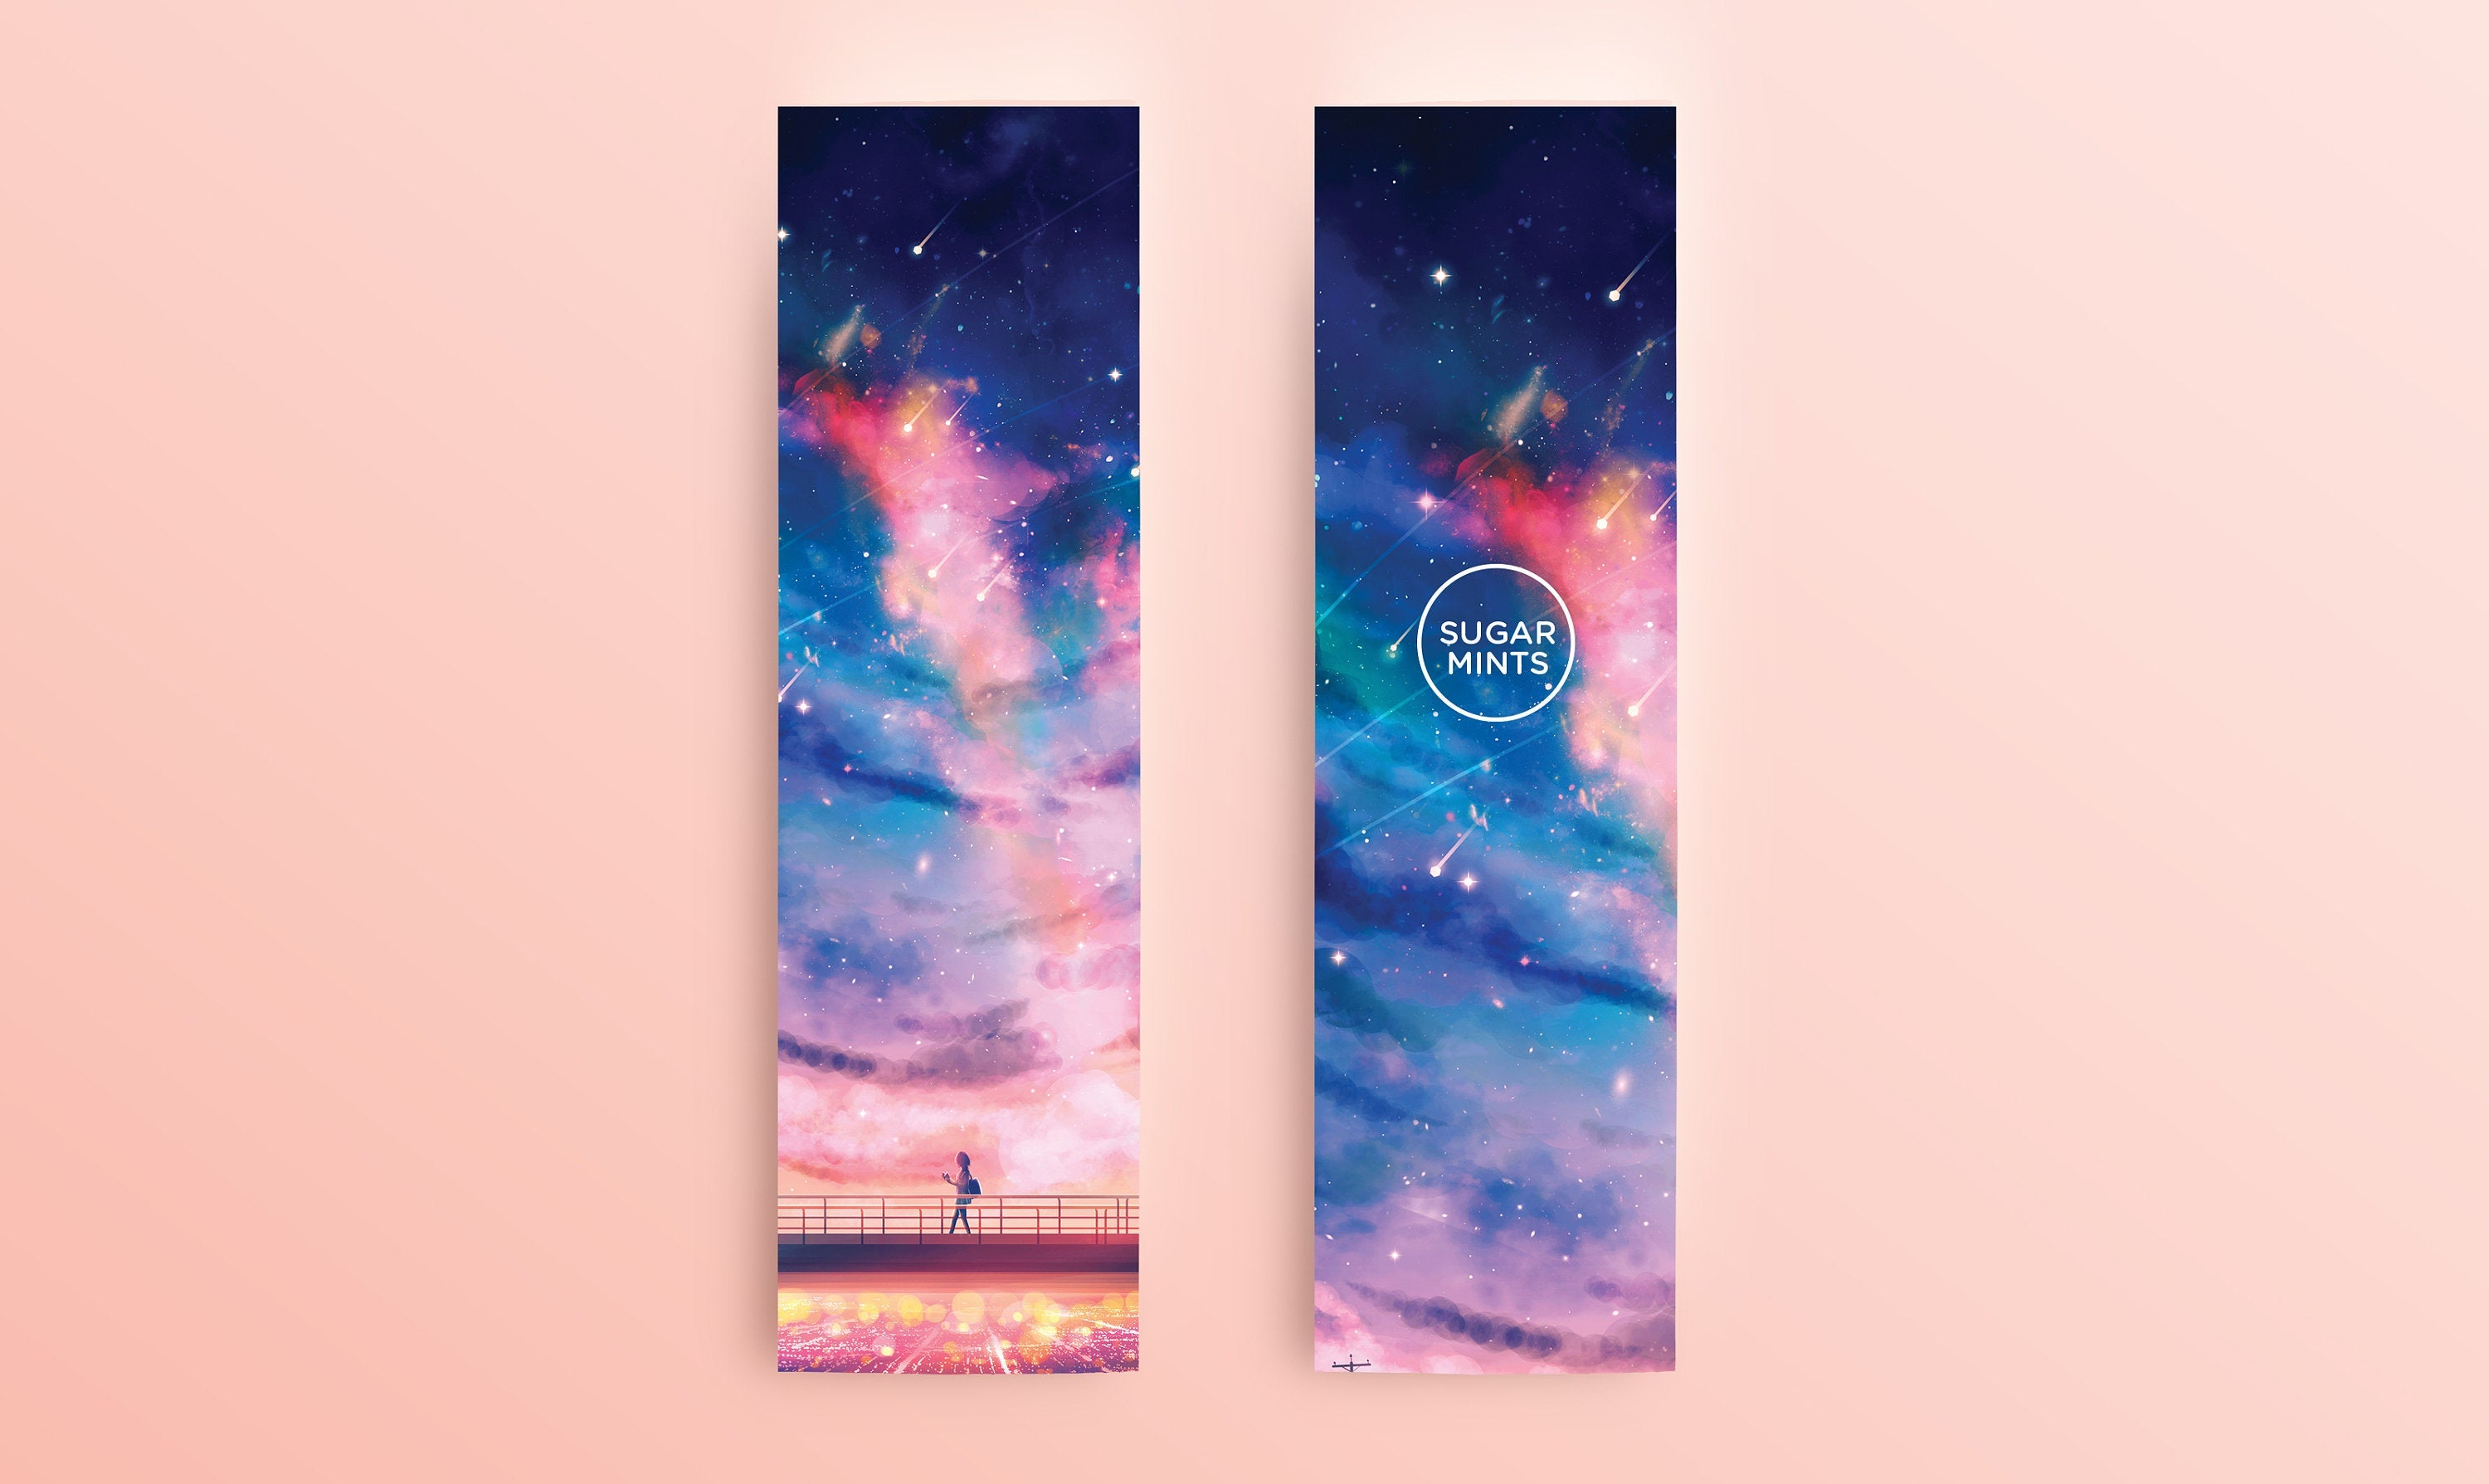 Bookmark: The Road Home - Sugarmints Artstore